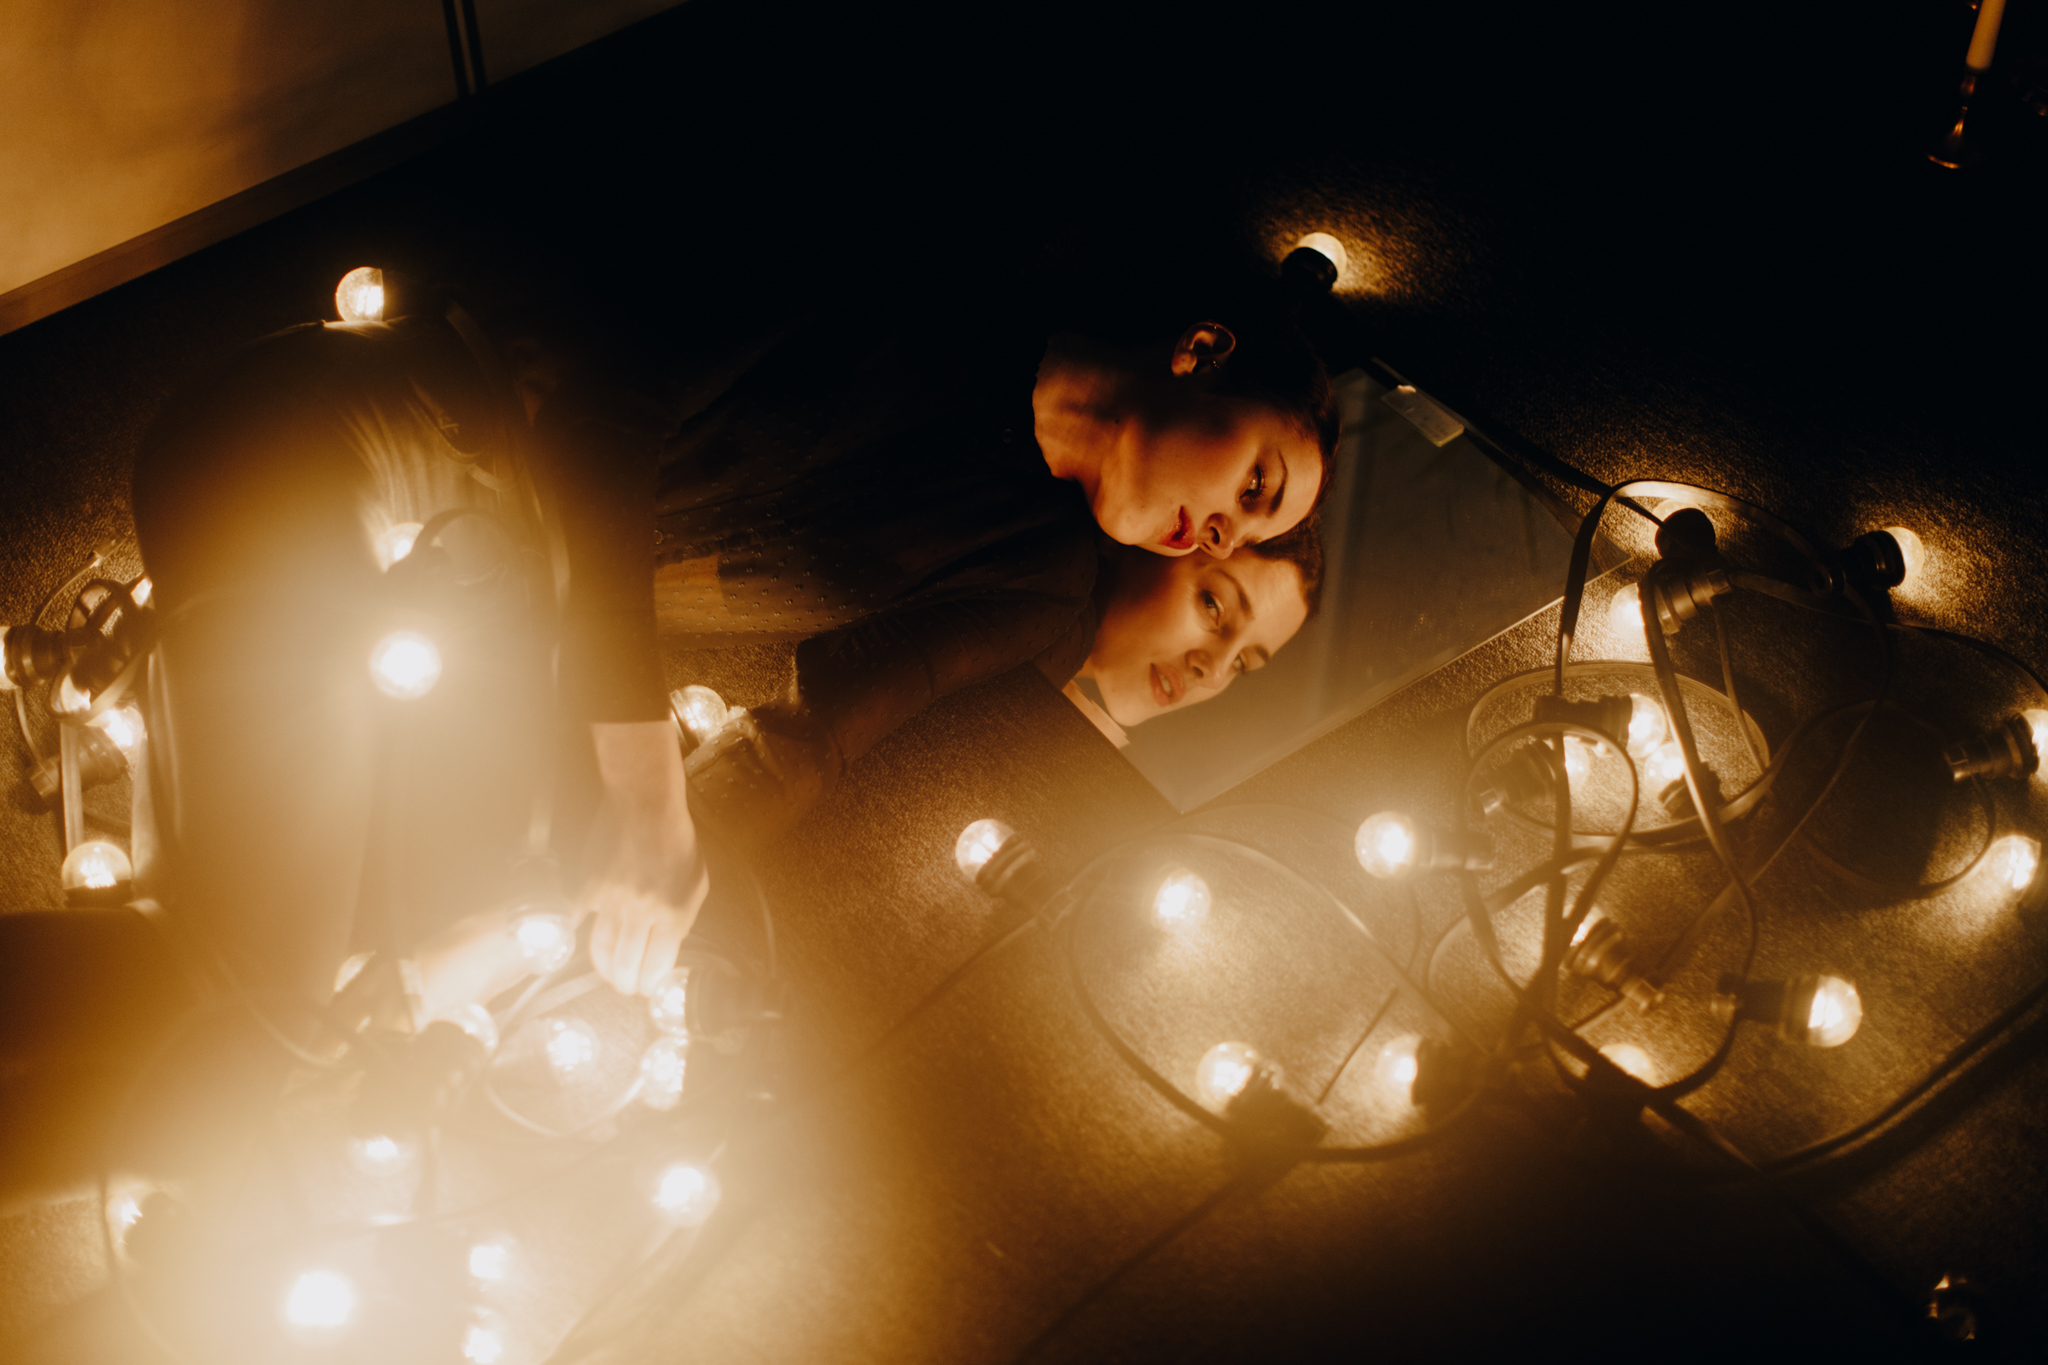 Girl looking in mirror surrounded by string lights